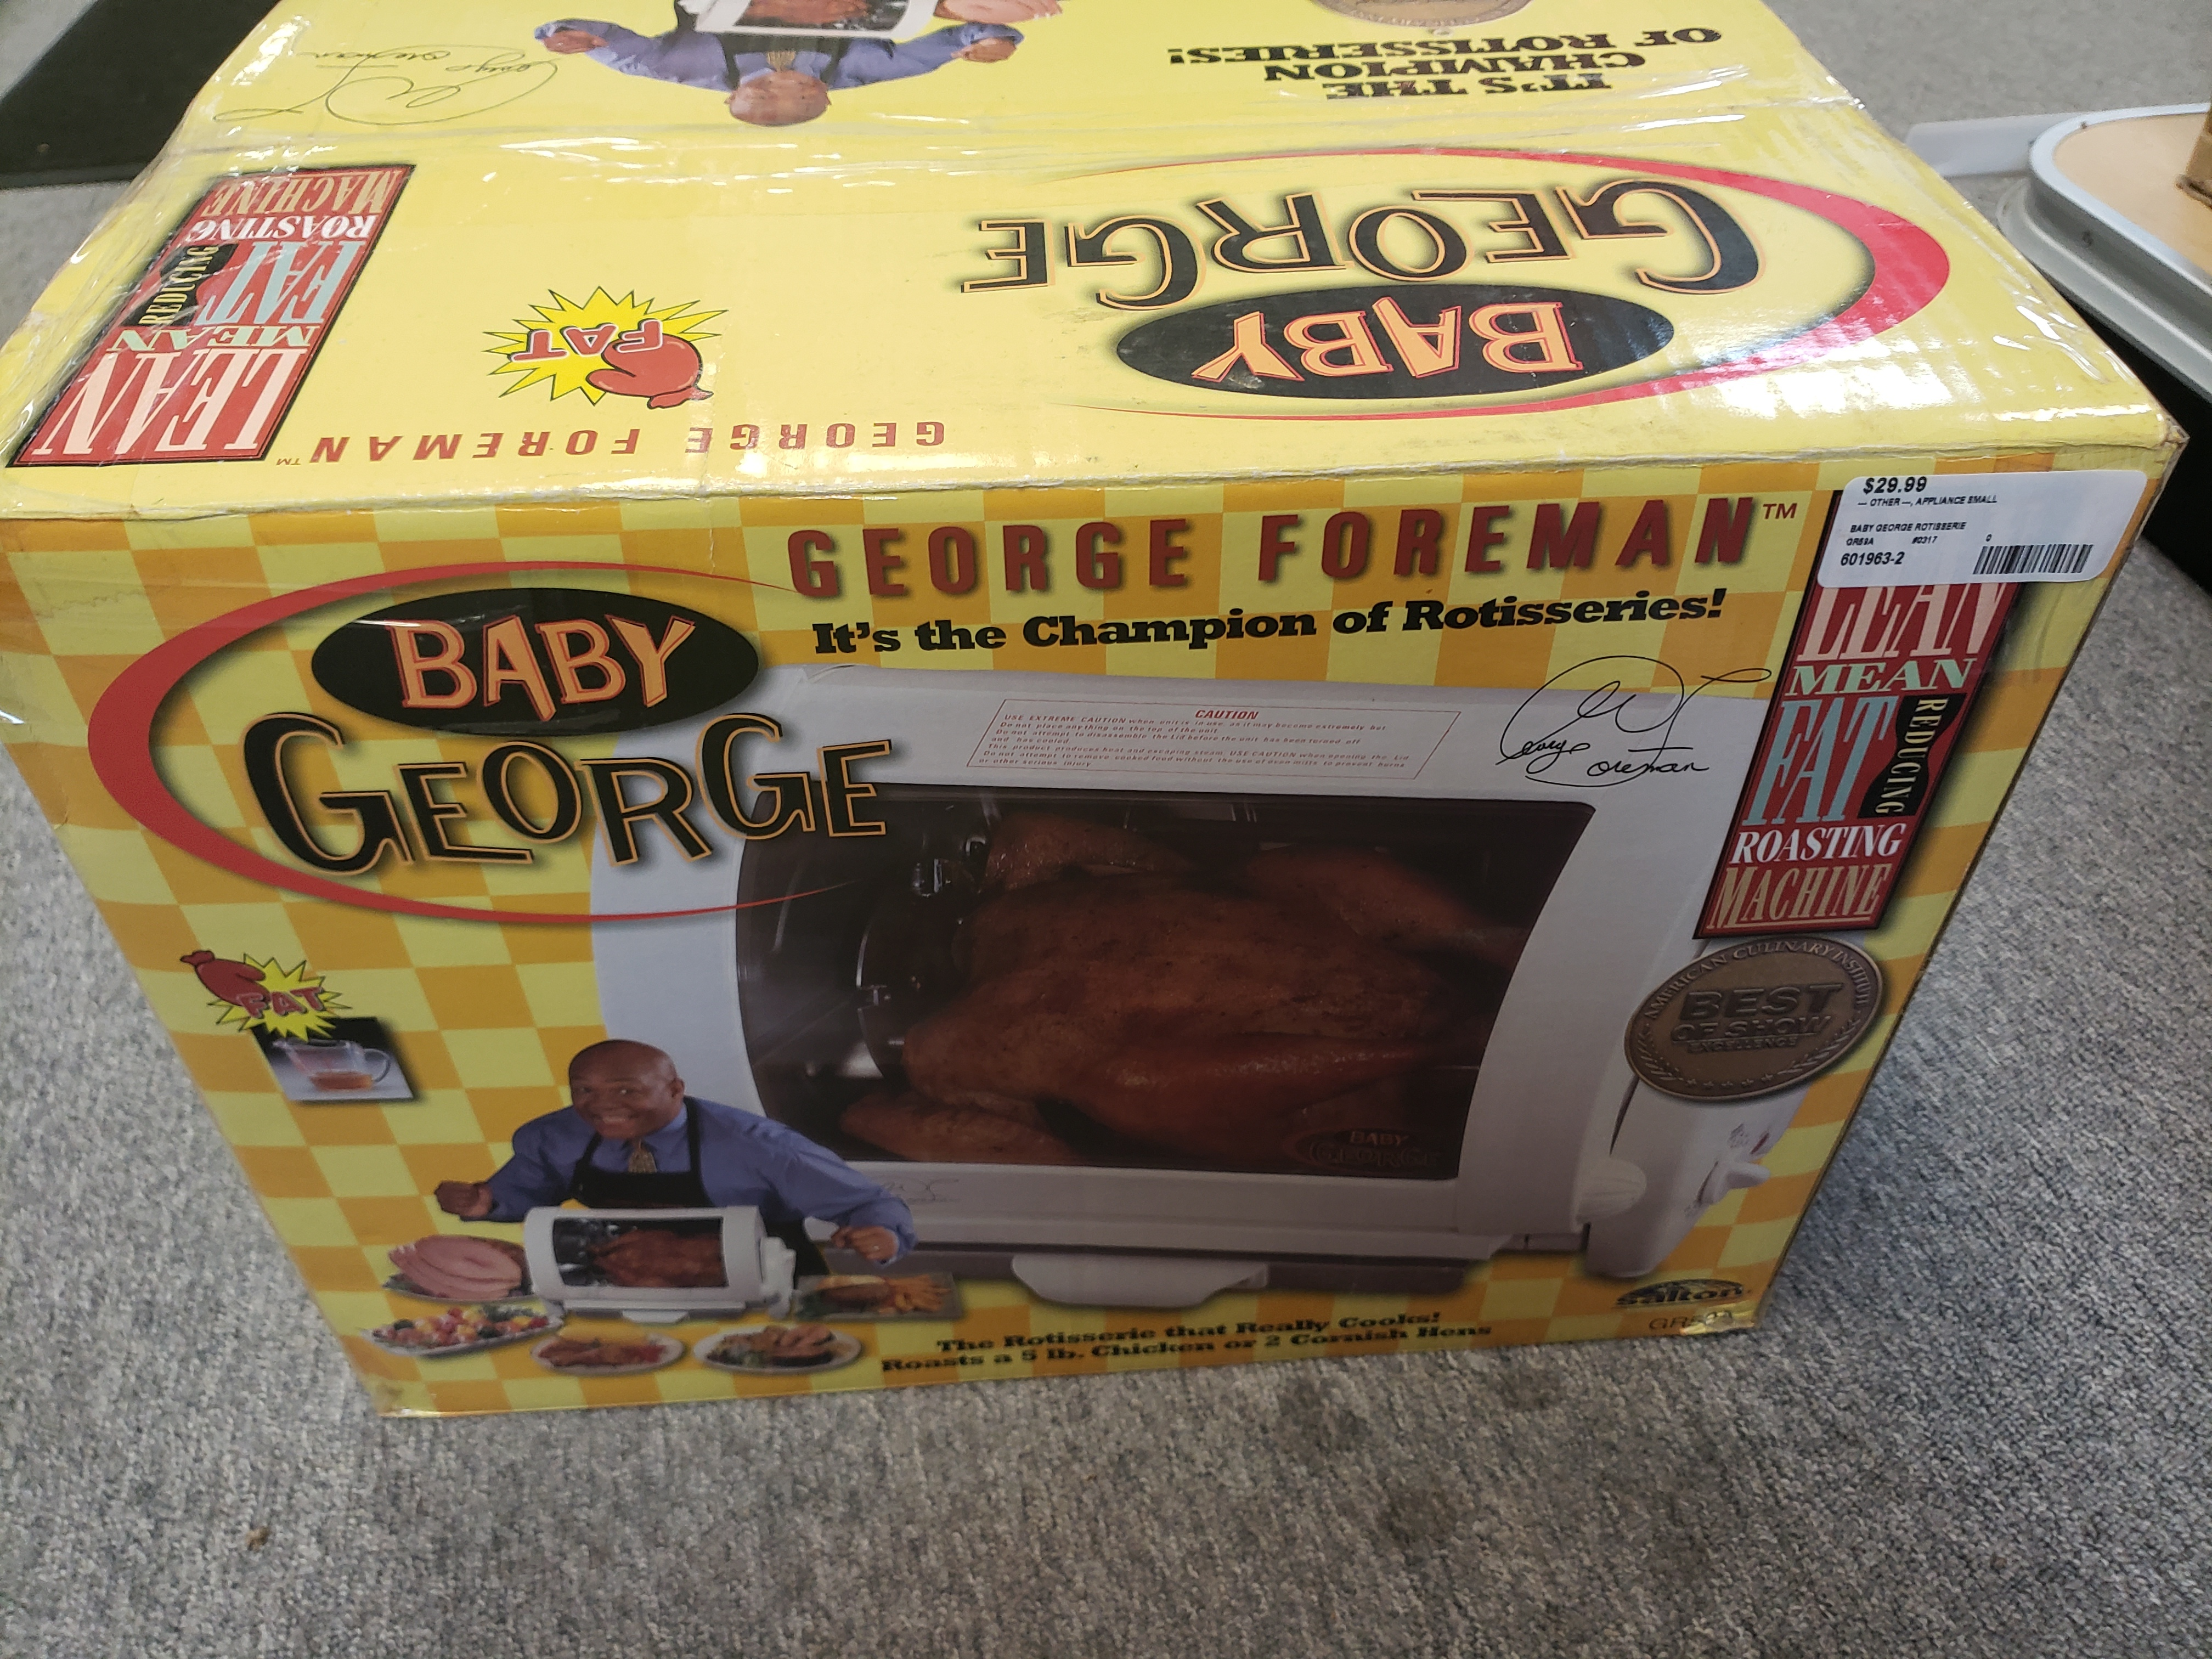 BABY GEORGE ROTISSERIE COOKER - GR59A